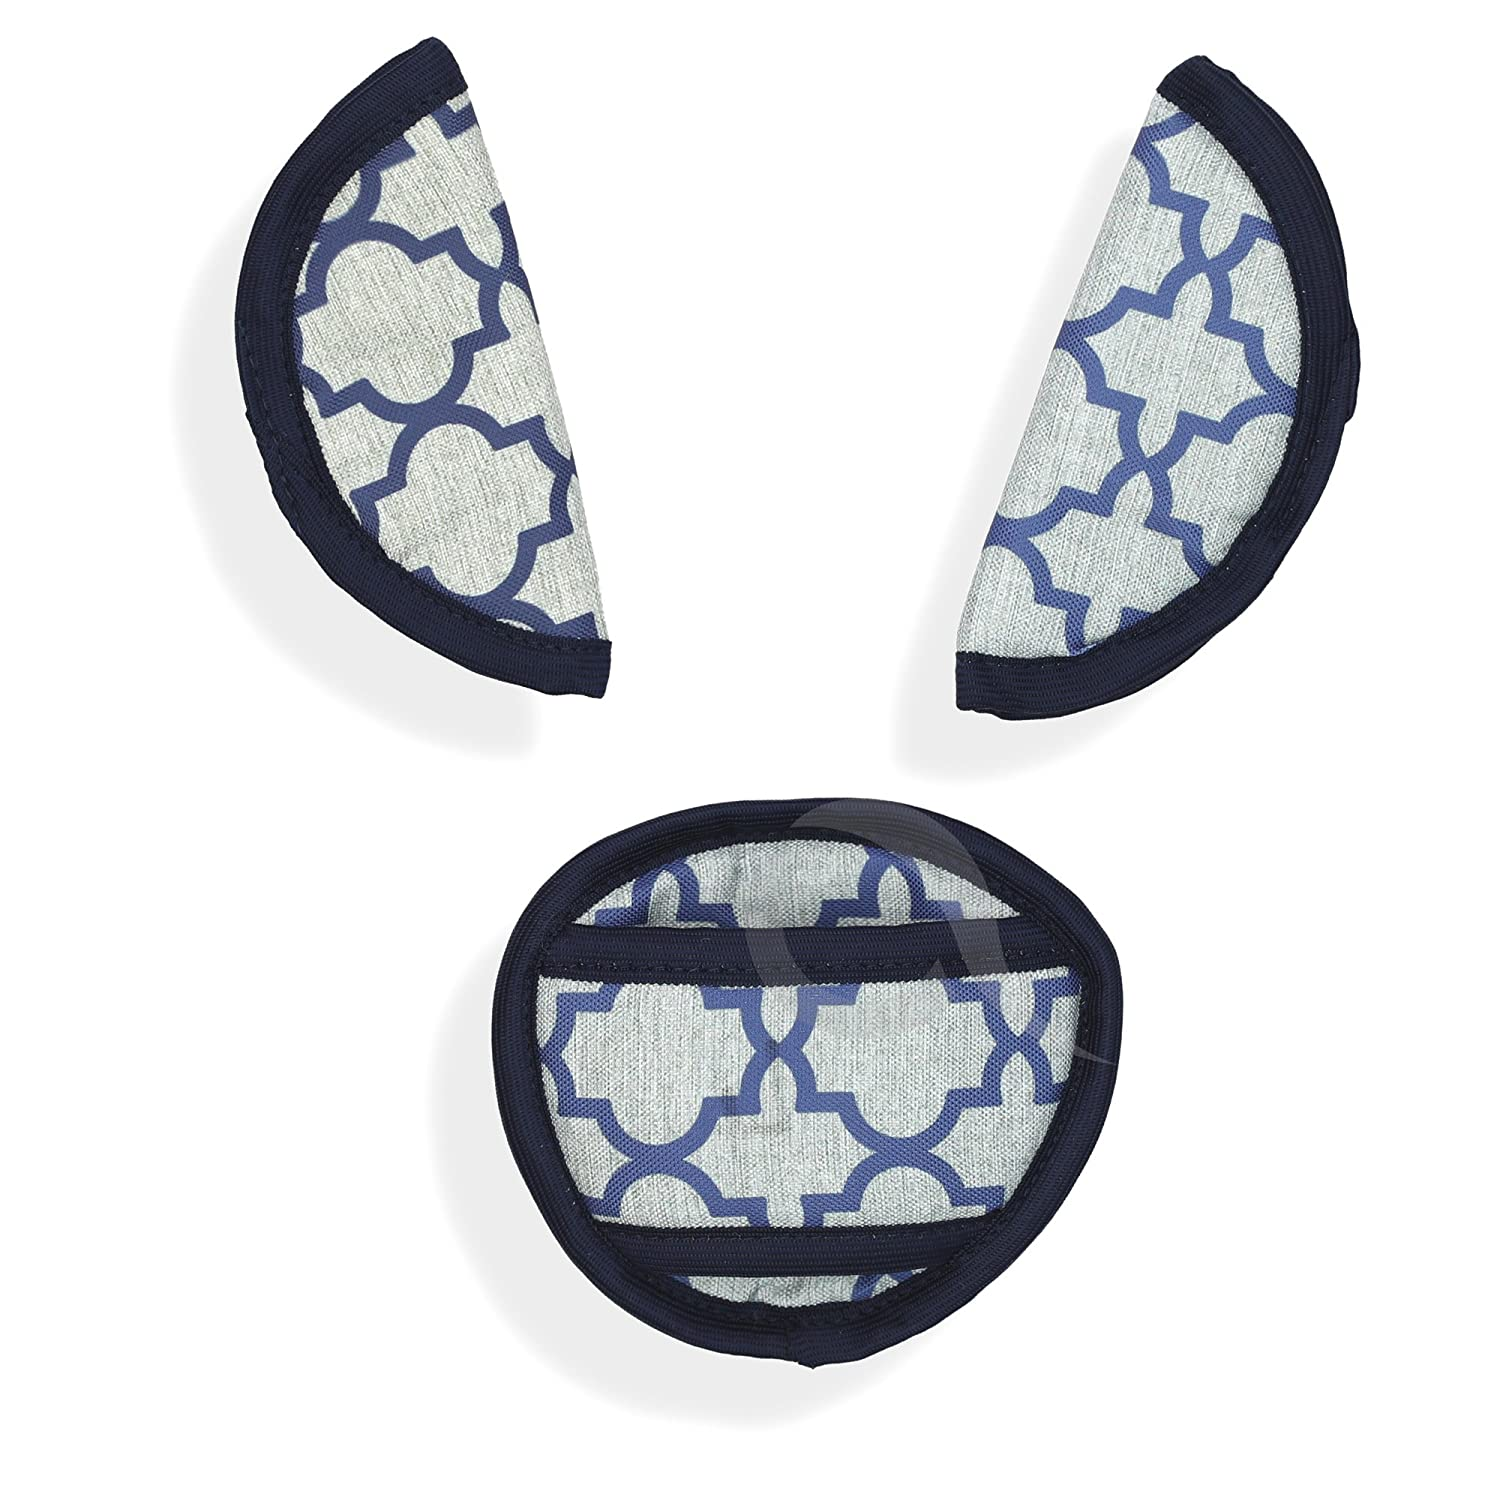 car seat straps P235-navy BELTS PADS SHOULDER STRAP /& CROTCH cover UNIVERSAL Fits most buggy stroller